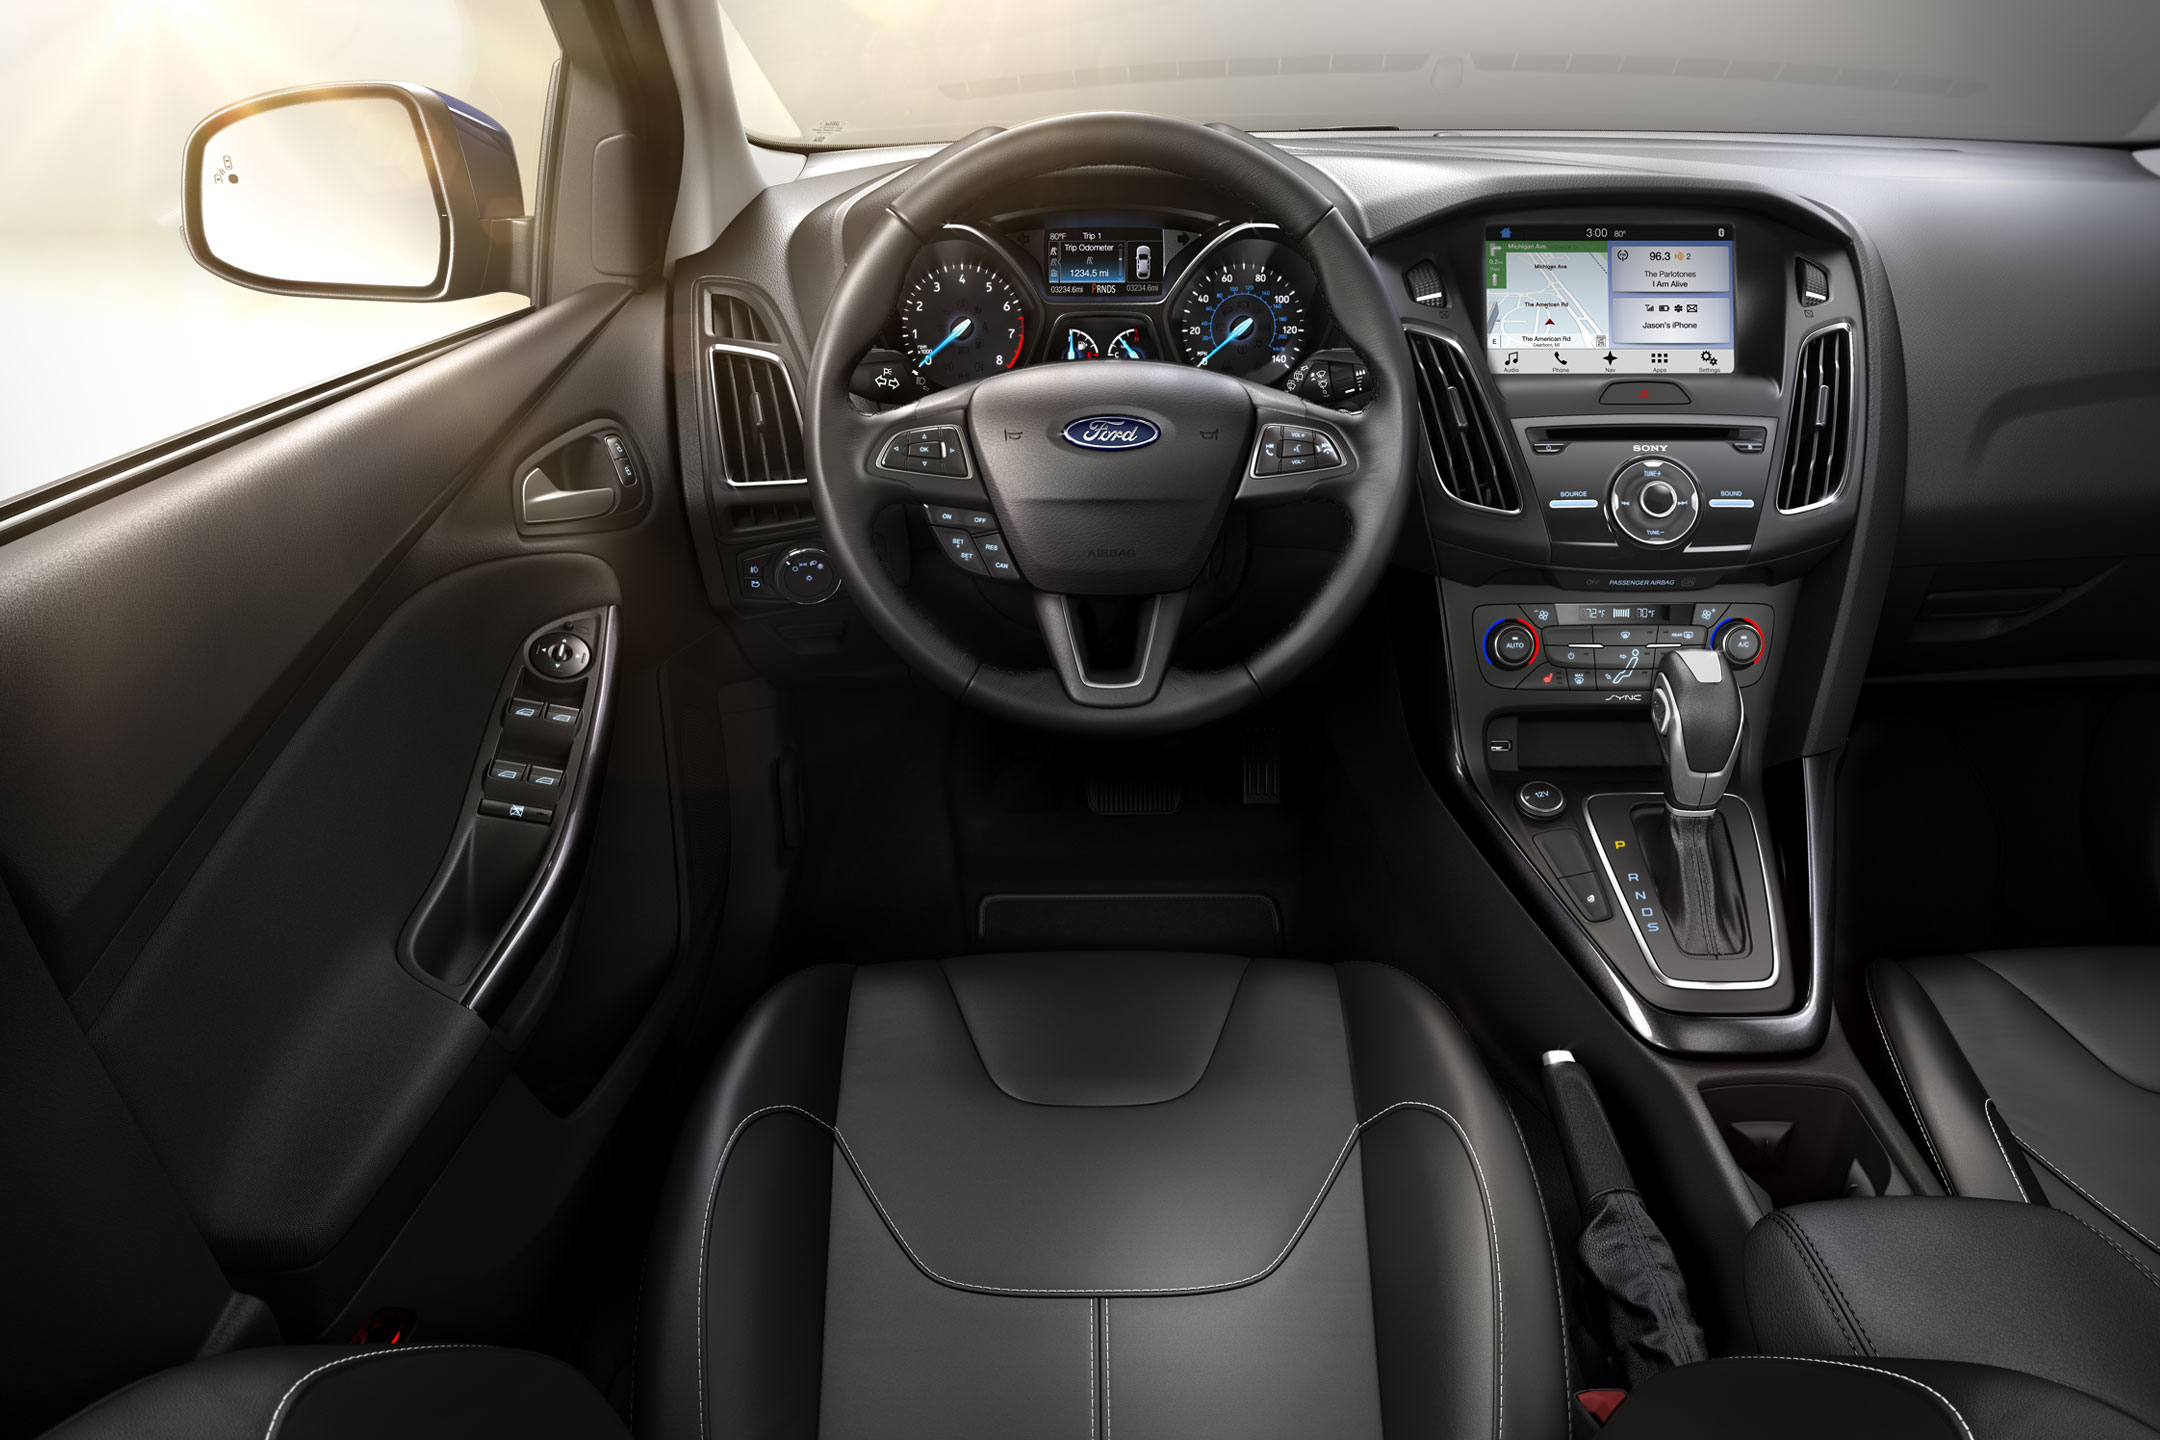 2017 Ford Focus Front Interior Beach Ford